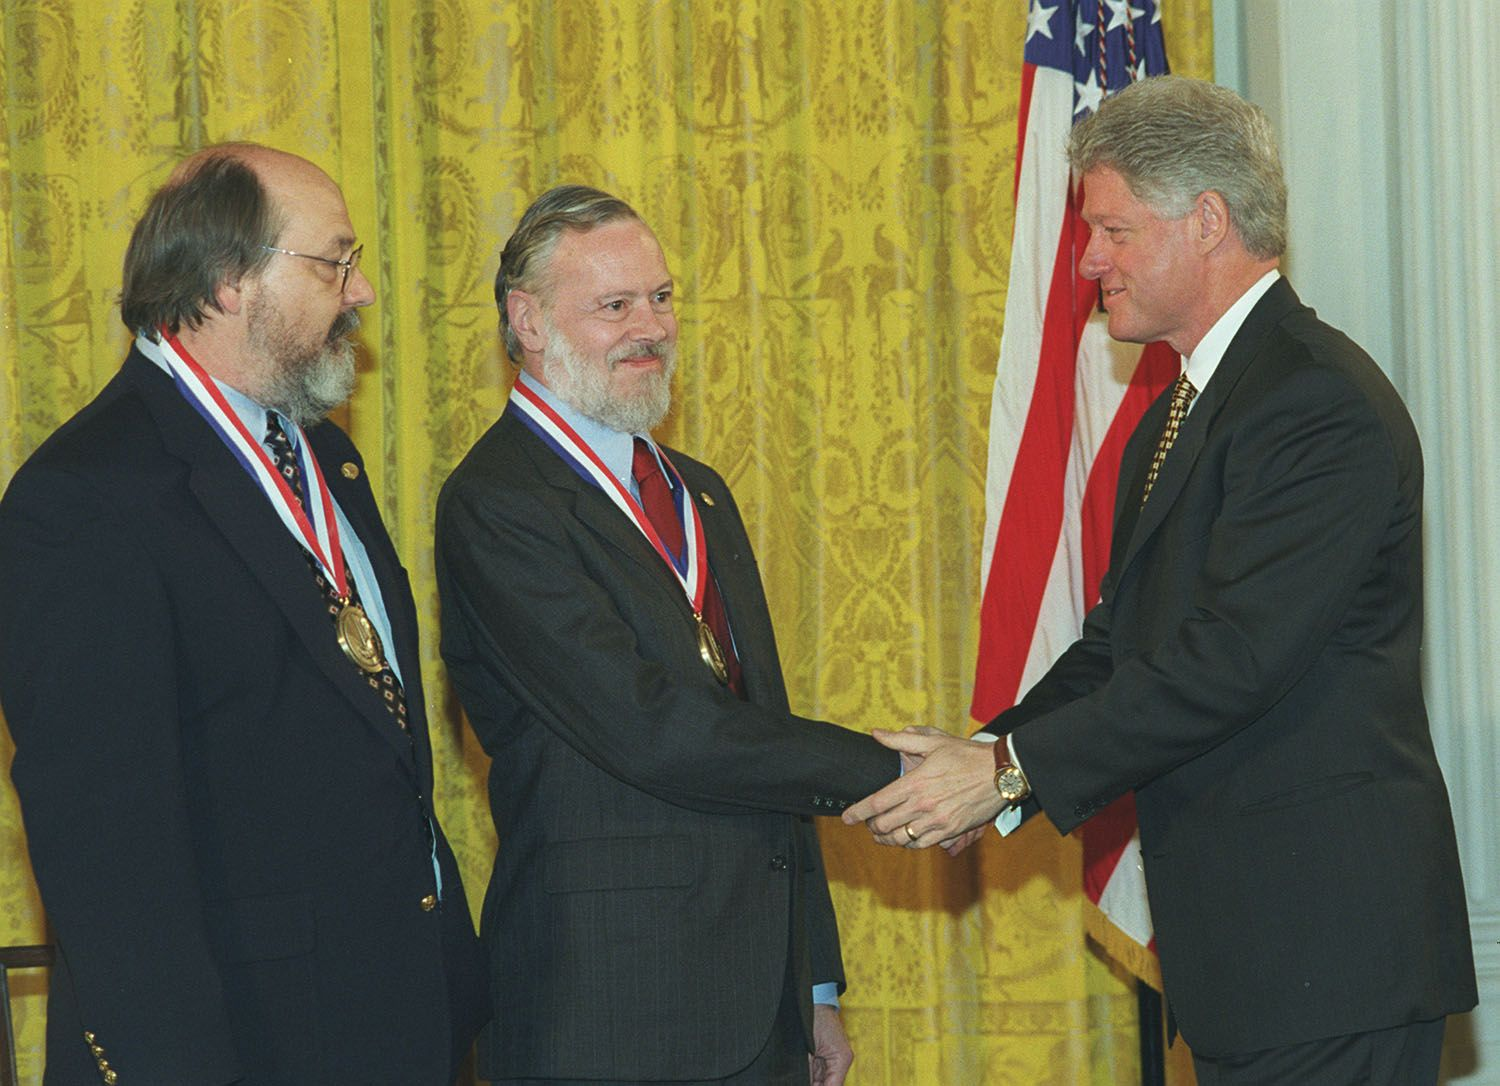 Left to right Kenneth L. Thompson, Dennis M. Ritchie and Bill Clinton.